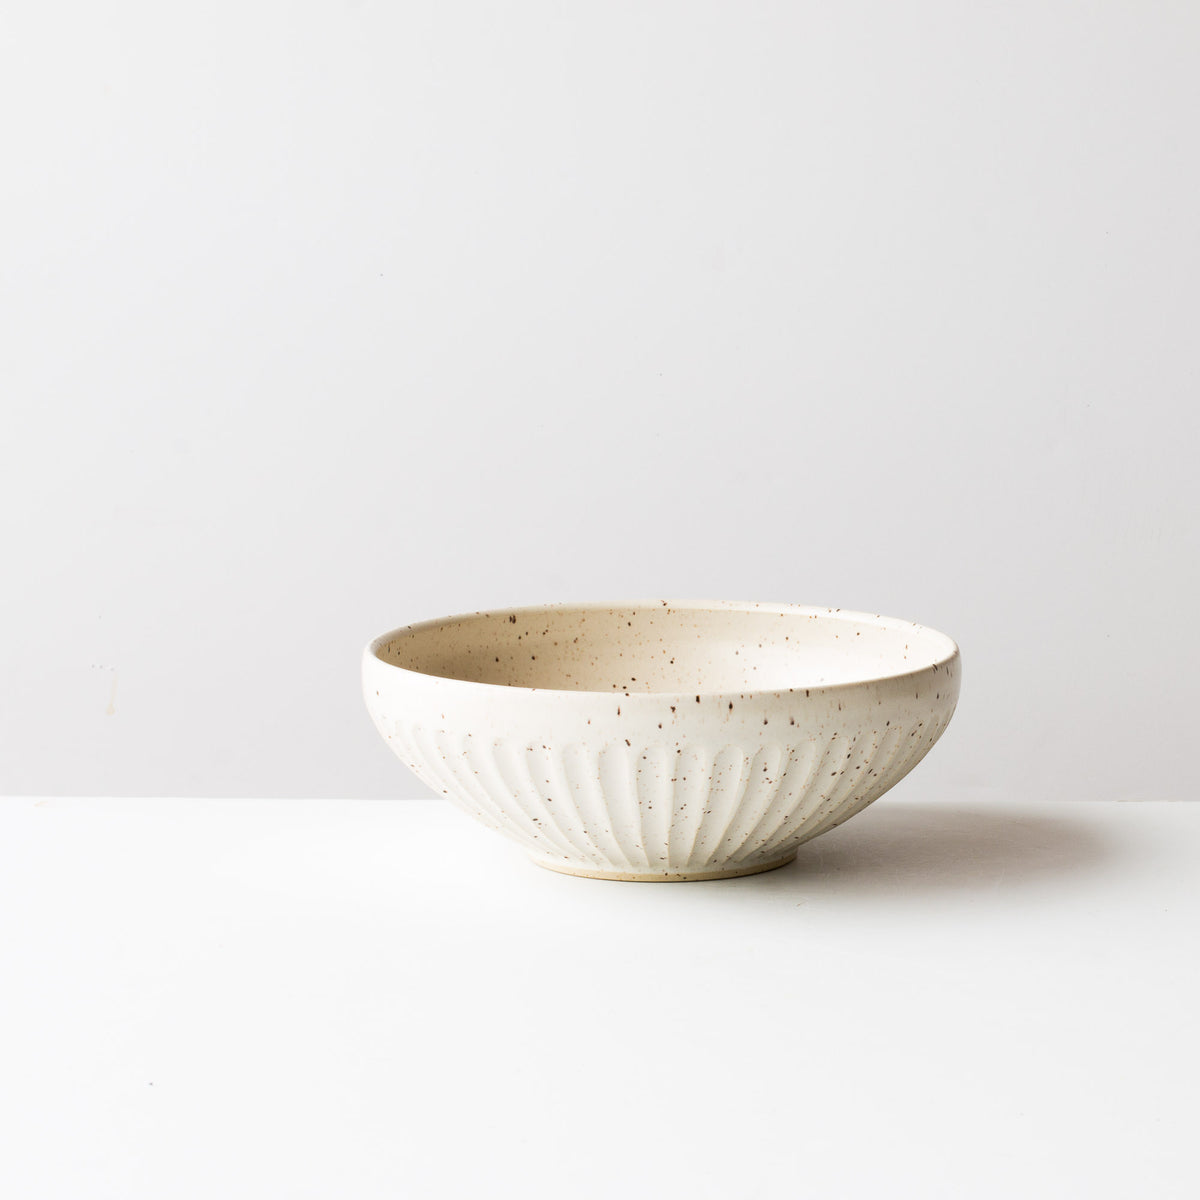 Handmade Contemporary Ceramic Bowl - Speckled Off-White - Chic & Basta